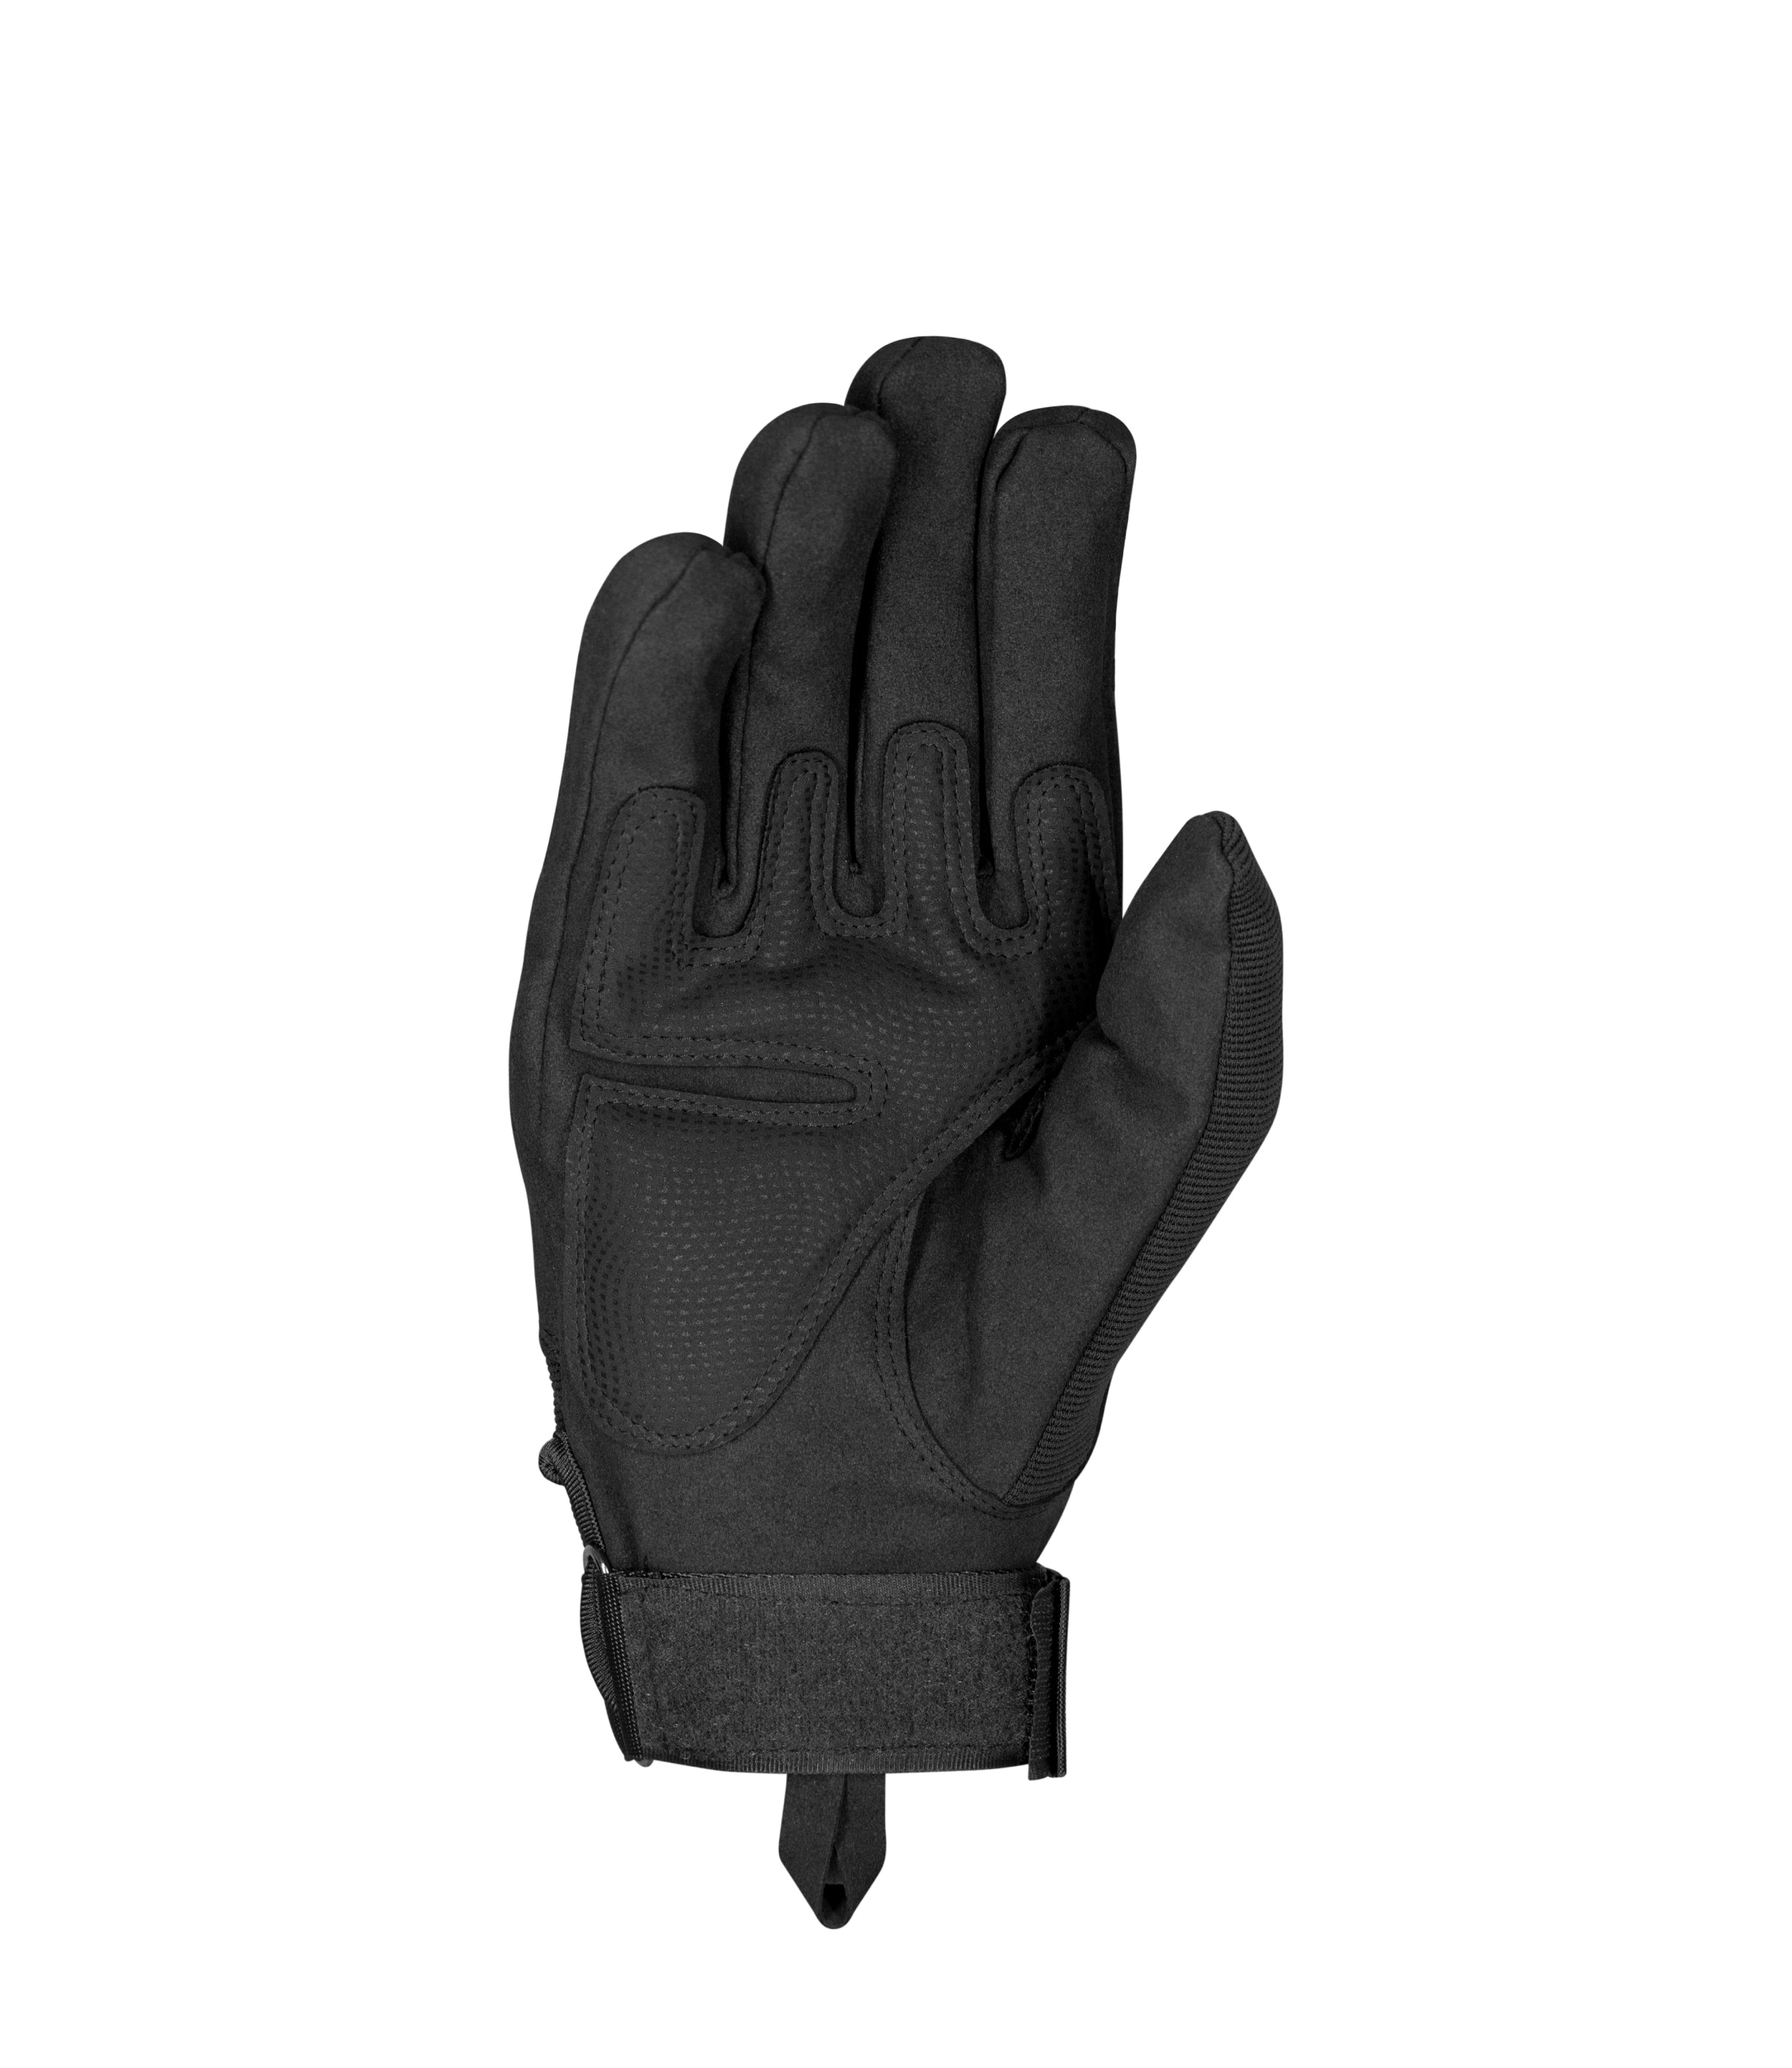 RECON GLOVES (Black) - Rynox Gears -